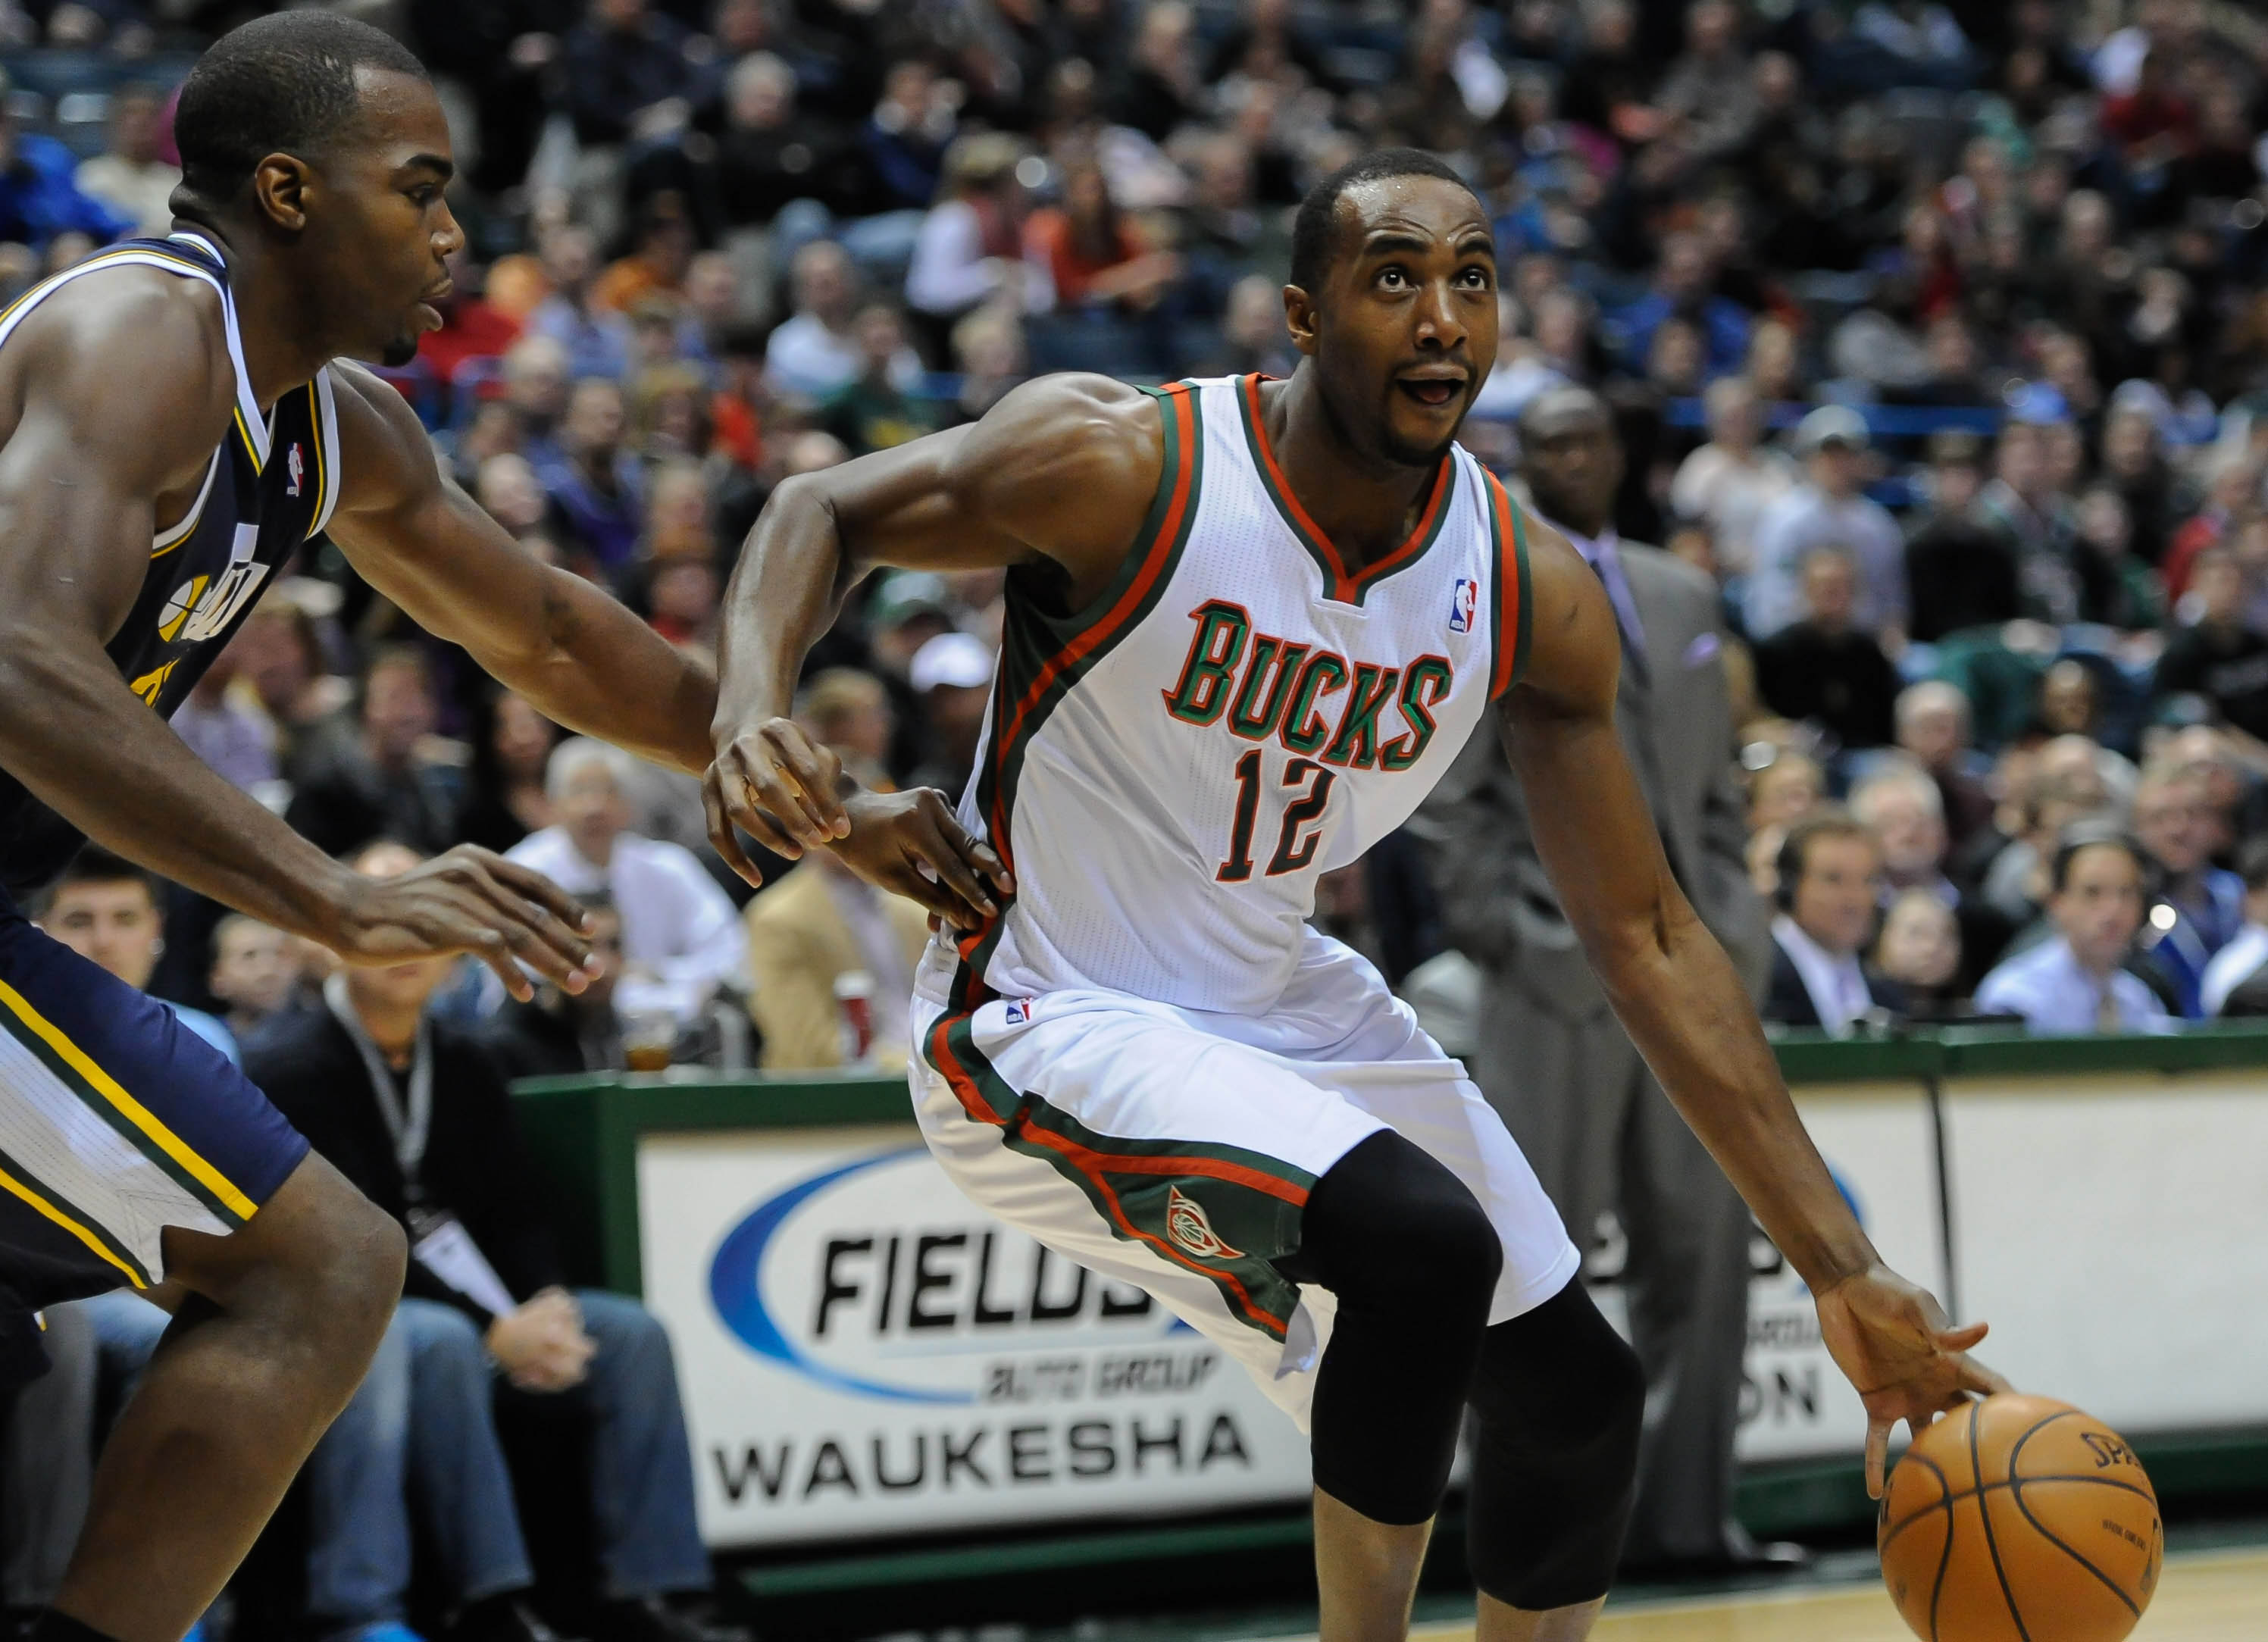 Luc Richard Mbah a Moute averaged 6.7 points for the Bucks last season. (USA Today Sports)